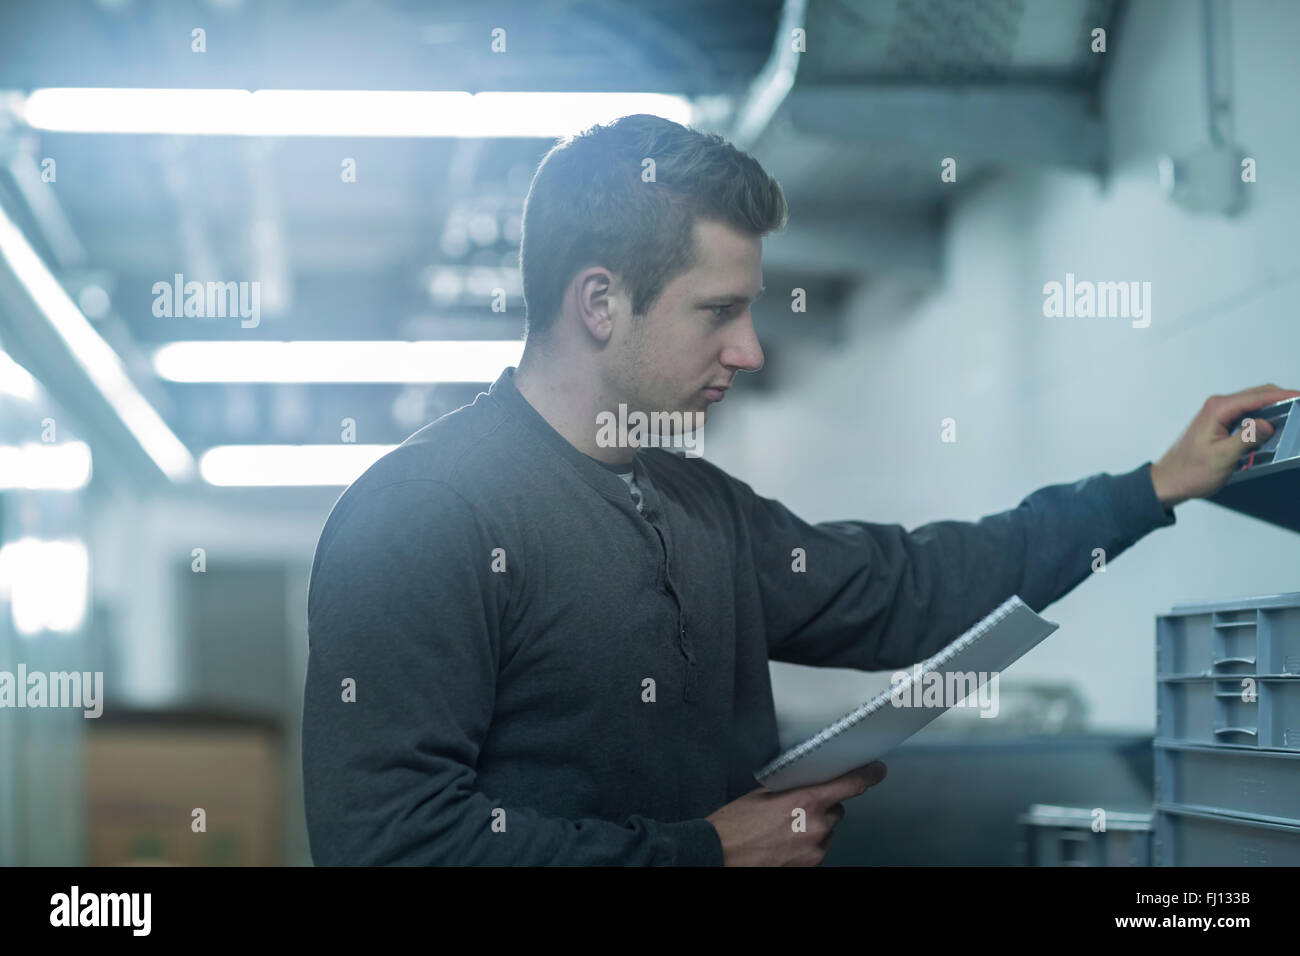 Young man working in technical room - Stock Image